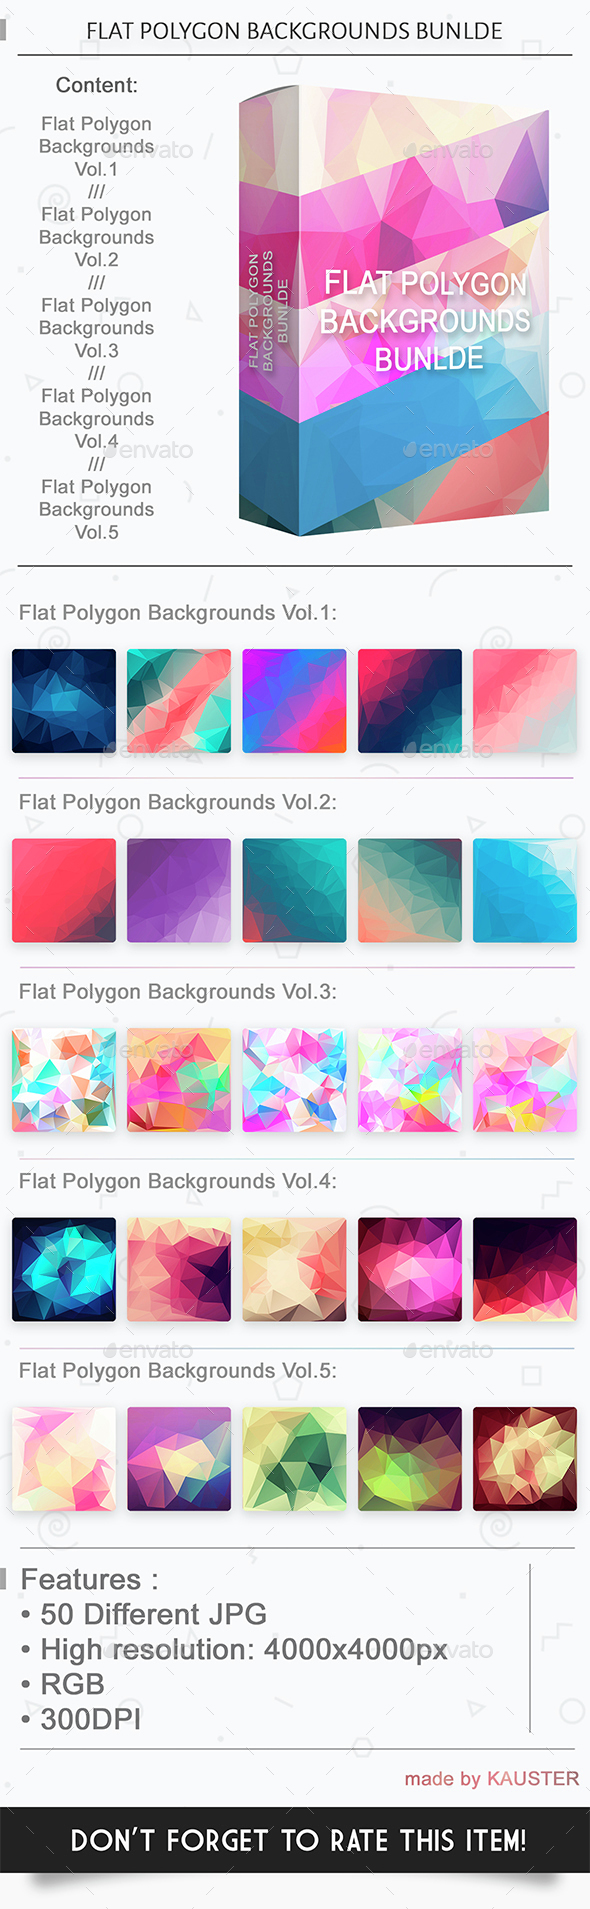 Flat polygon backgrounds bundle - Abstract Backgrounds